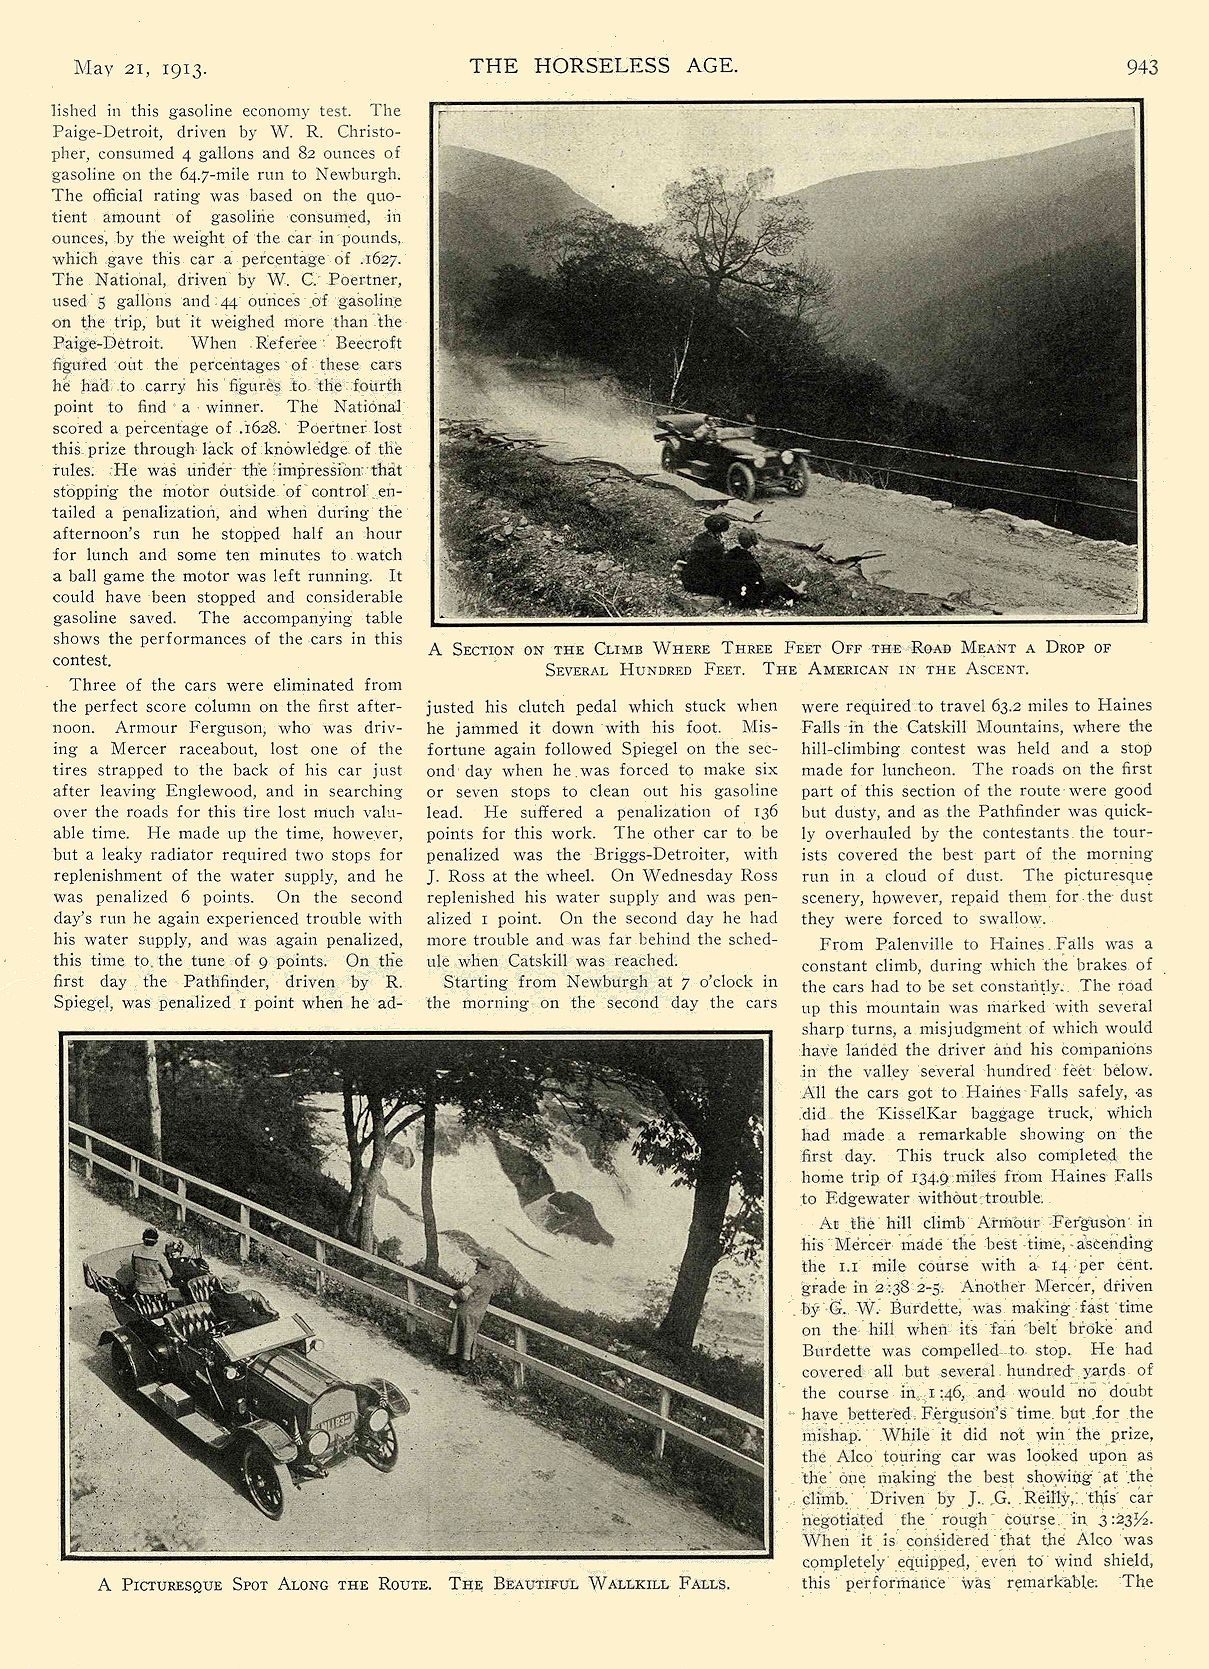 """1913 5 21 NATIONAL Article National """"SIX"""" $2375 New Yorkers Tour to the Catskills National Motor Vehicle Co. Indianapolis, IND THE HORSELESS AGE May 21, 1913 8.5″x12″ page 943"""